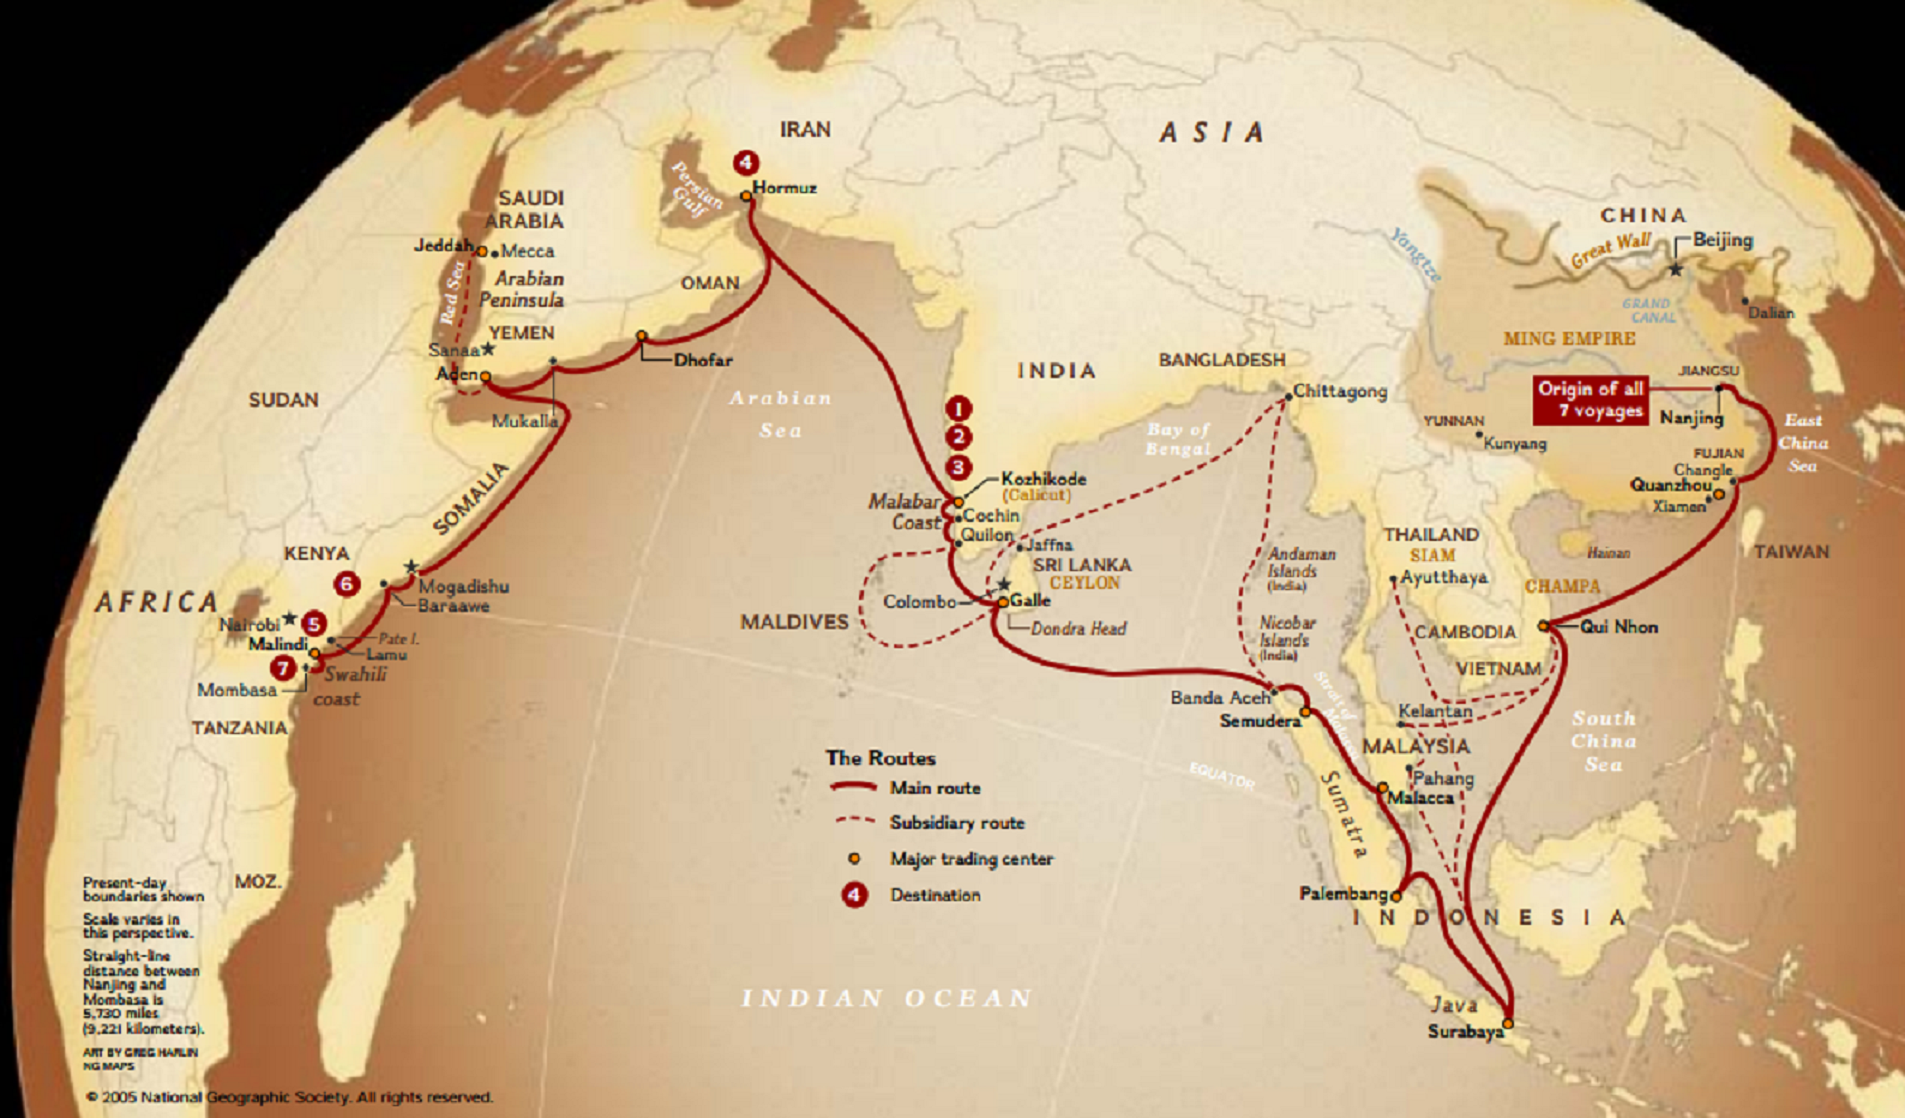 geographical map of ancient india with South East Asia Vary Of Chinese Nationalism And A Return Of The Maritime Silk Road on Es 199824AR furthermore Southeast Asia ref510058 together with Manipur State Map Tourism moreover Weather Map Symbols 1805704 also Great Indian Desert Map.